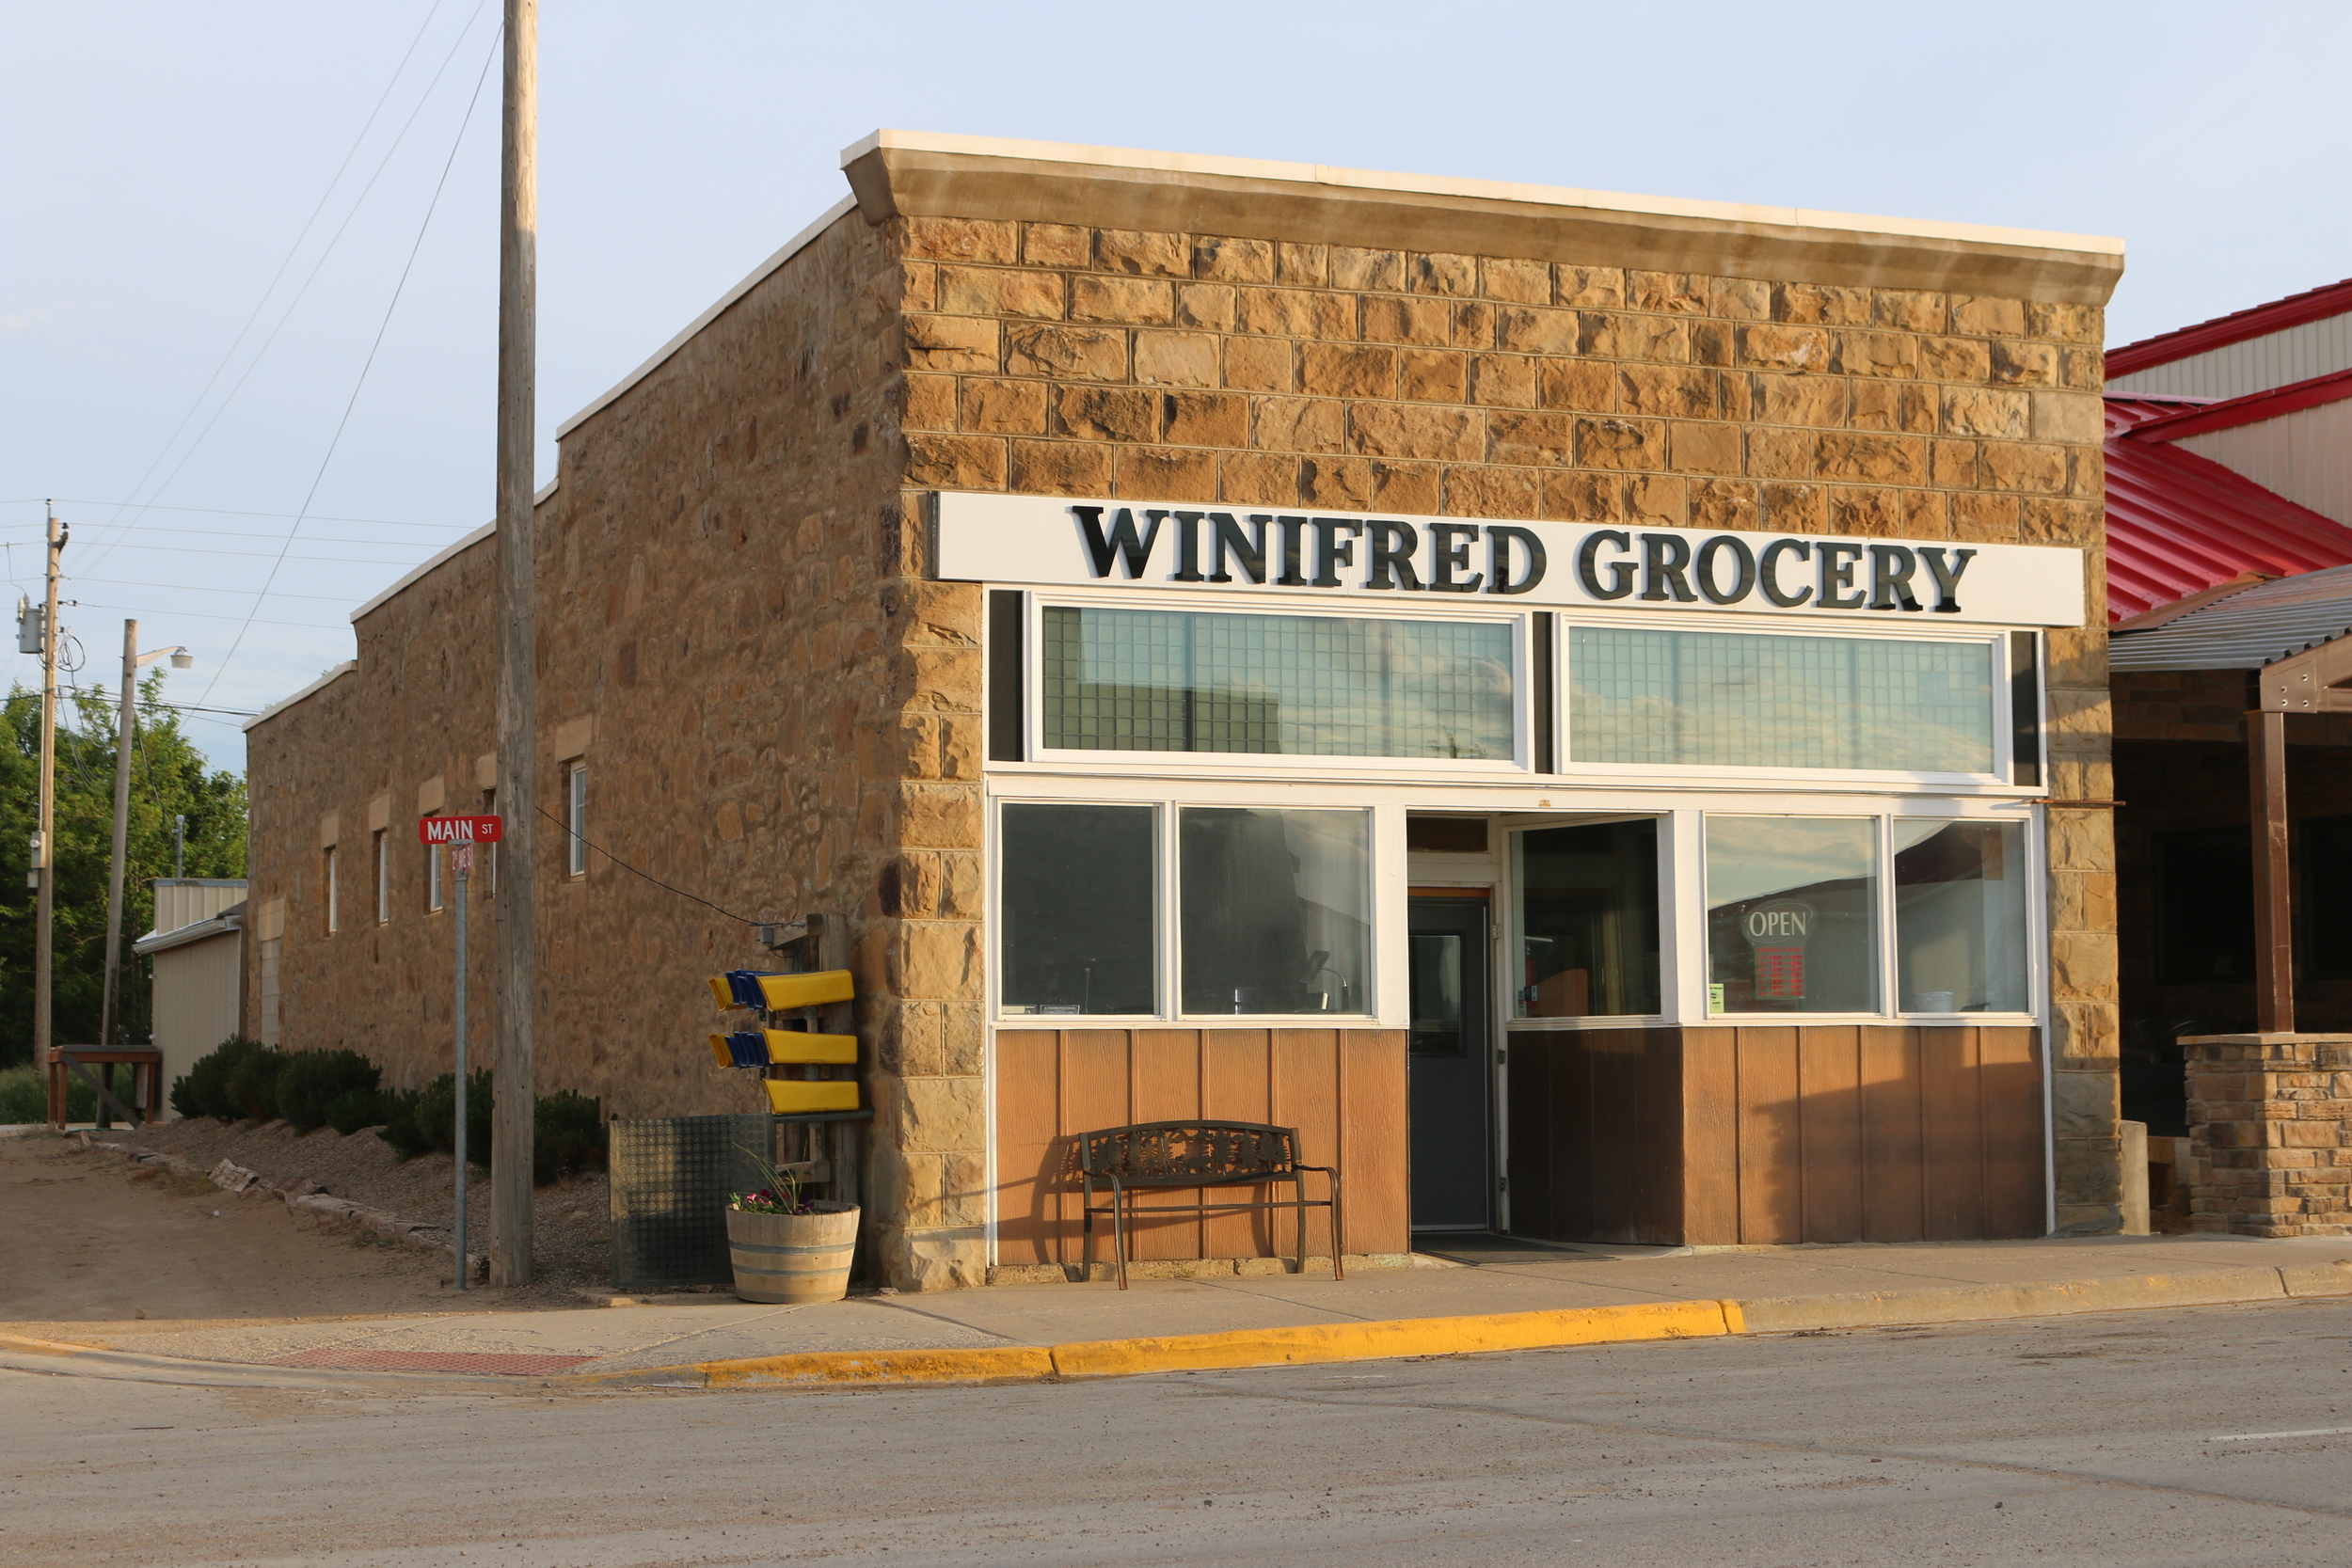 While many small towns face the prospects of shrinking inventories in their local grocery stores, Winifred Grocery has set out to defy the odds by providing an ever-expanding inventory of groceries, produce, household items, beverages, milkshakes, ice cream,beer and wine, and liquor, as well as offering fresh sandwiches and baked good in their deli.